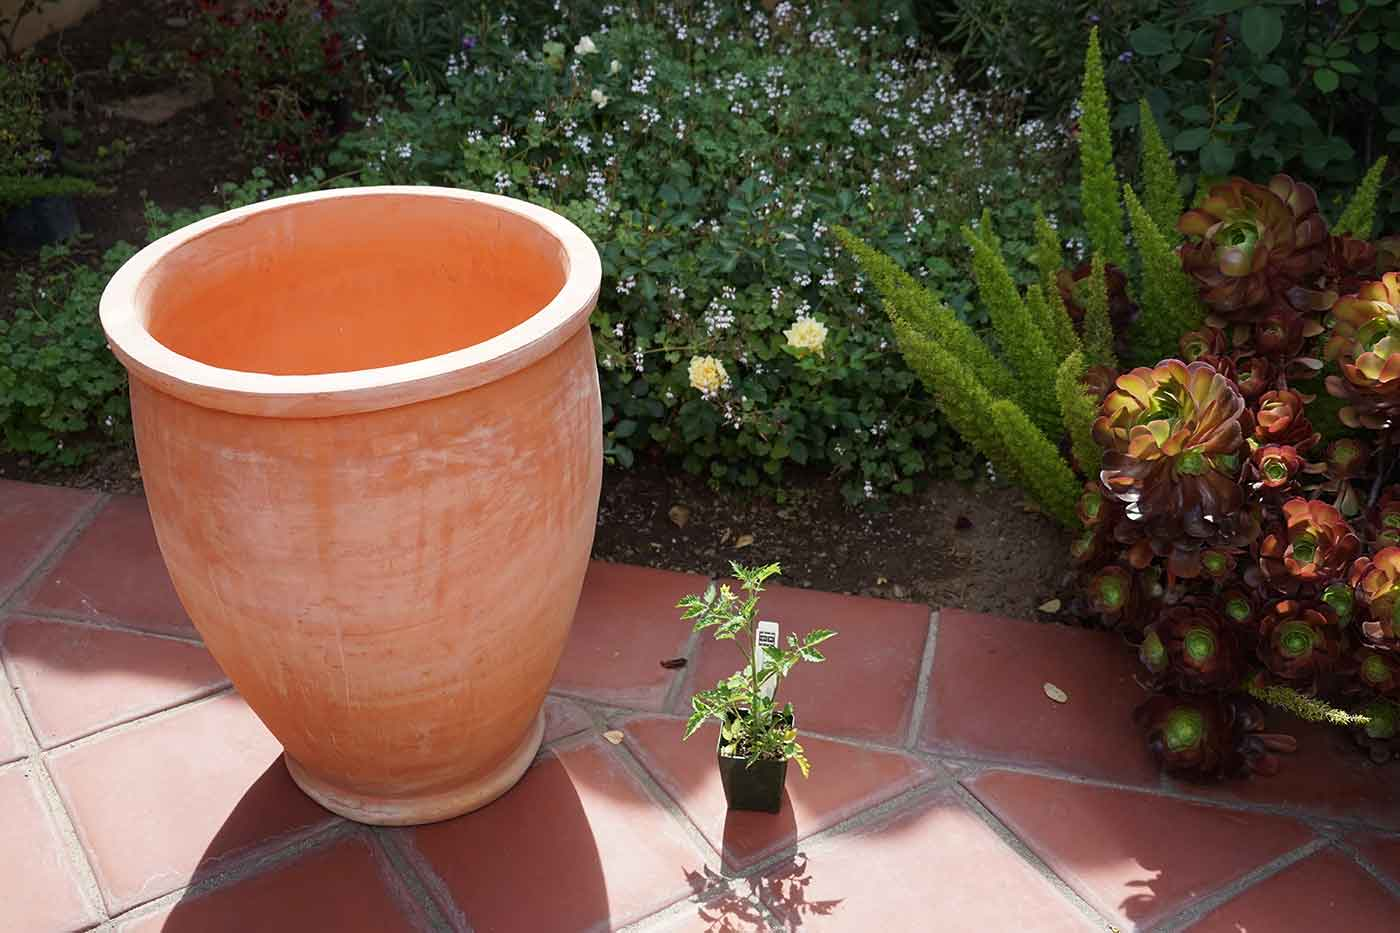 a large empty urn-shaped pot next to a tiny tomato seedling on a patio